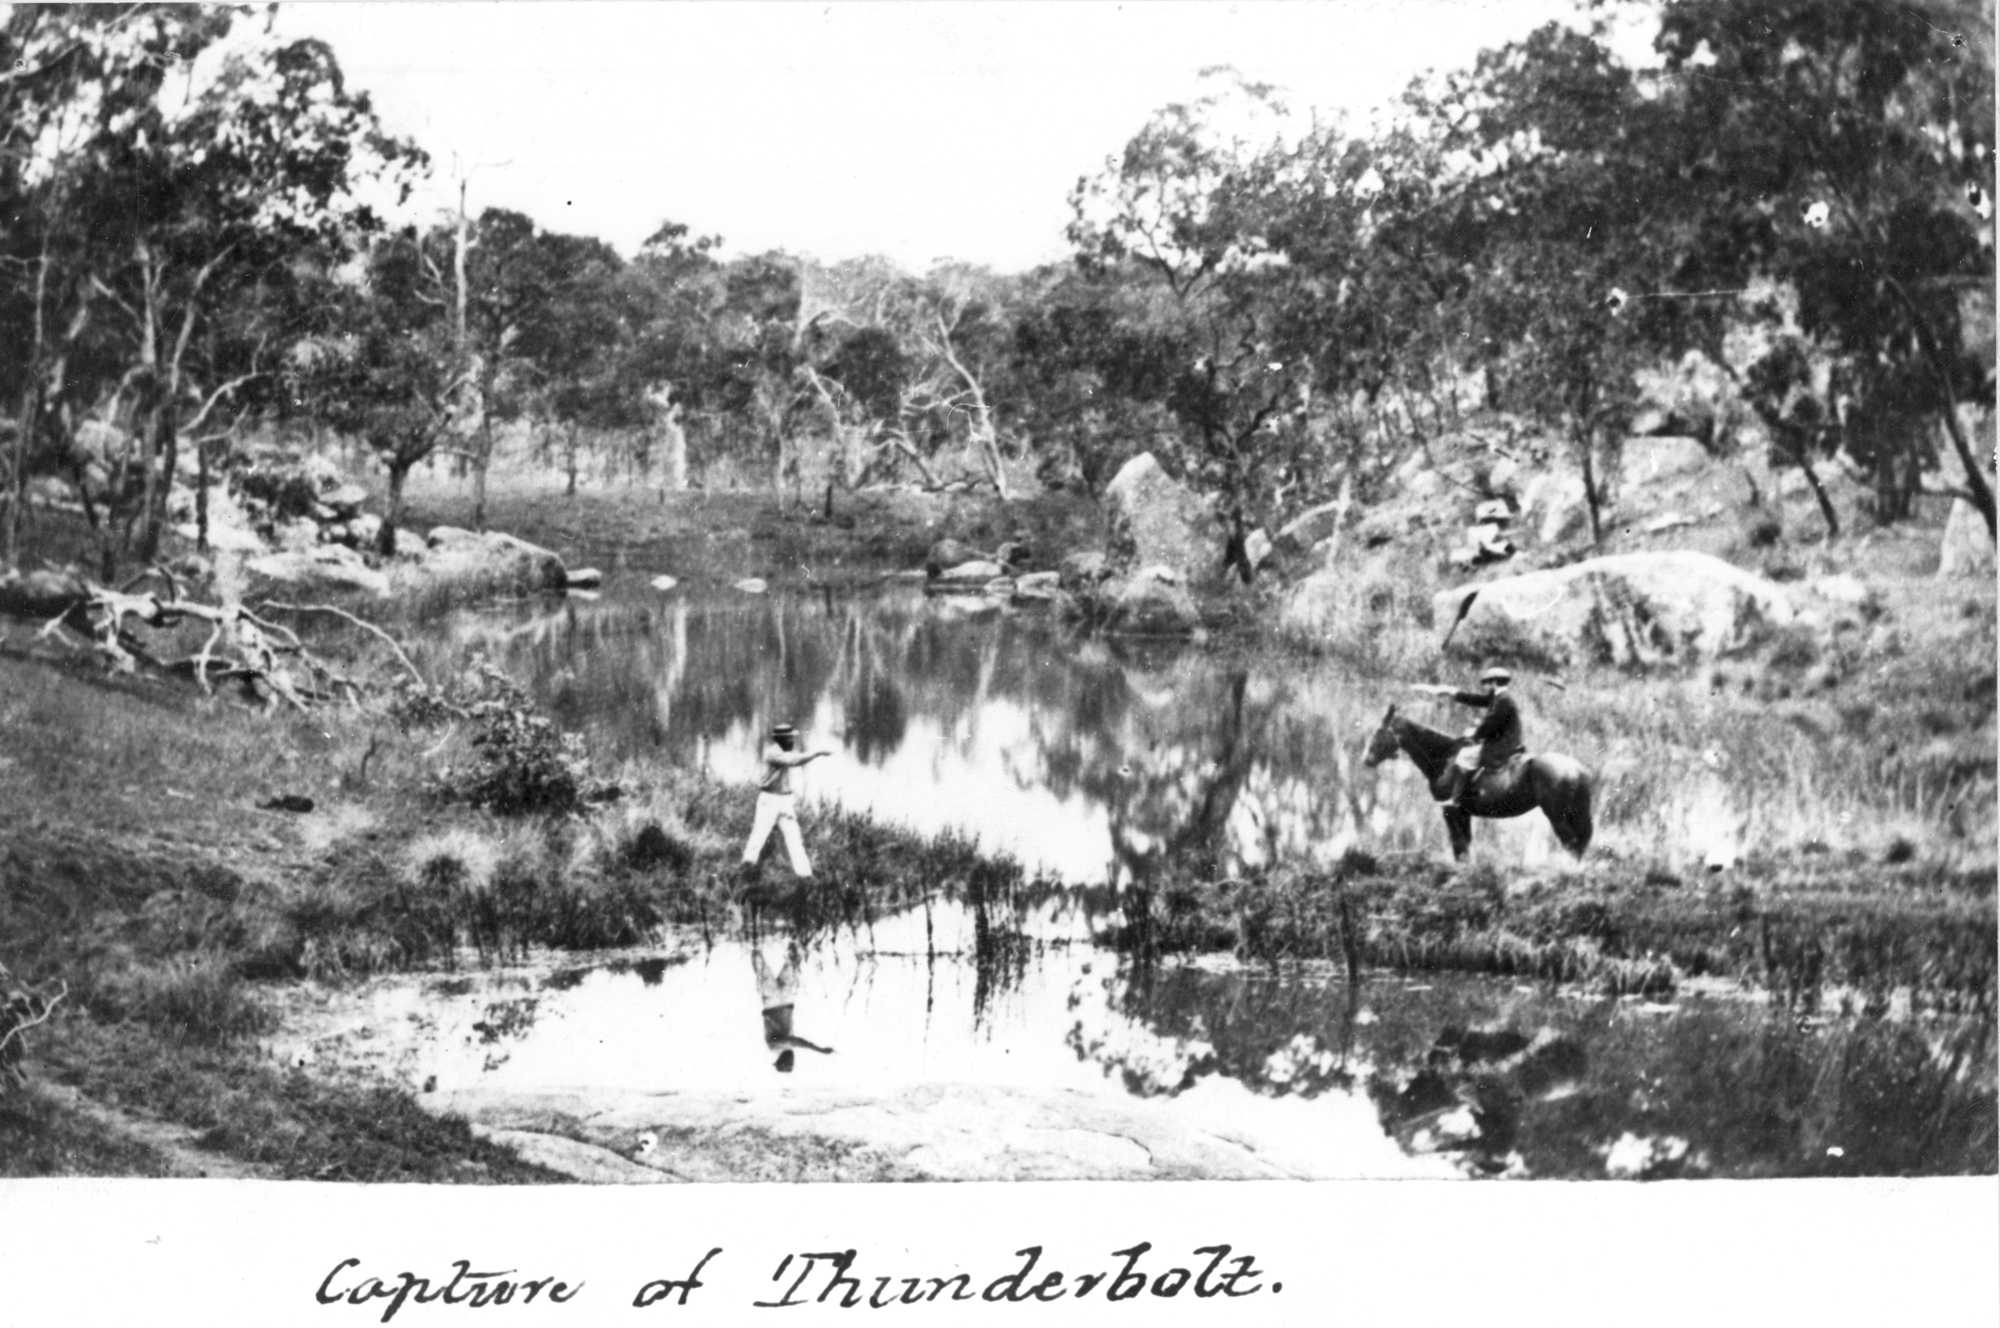 Reenactment of the Capture of Frederick Ward held at UNERA, Armidale